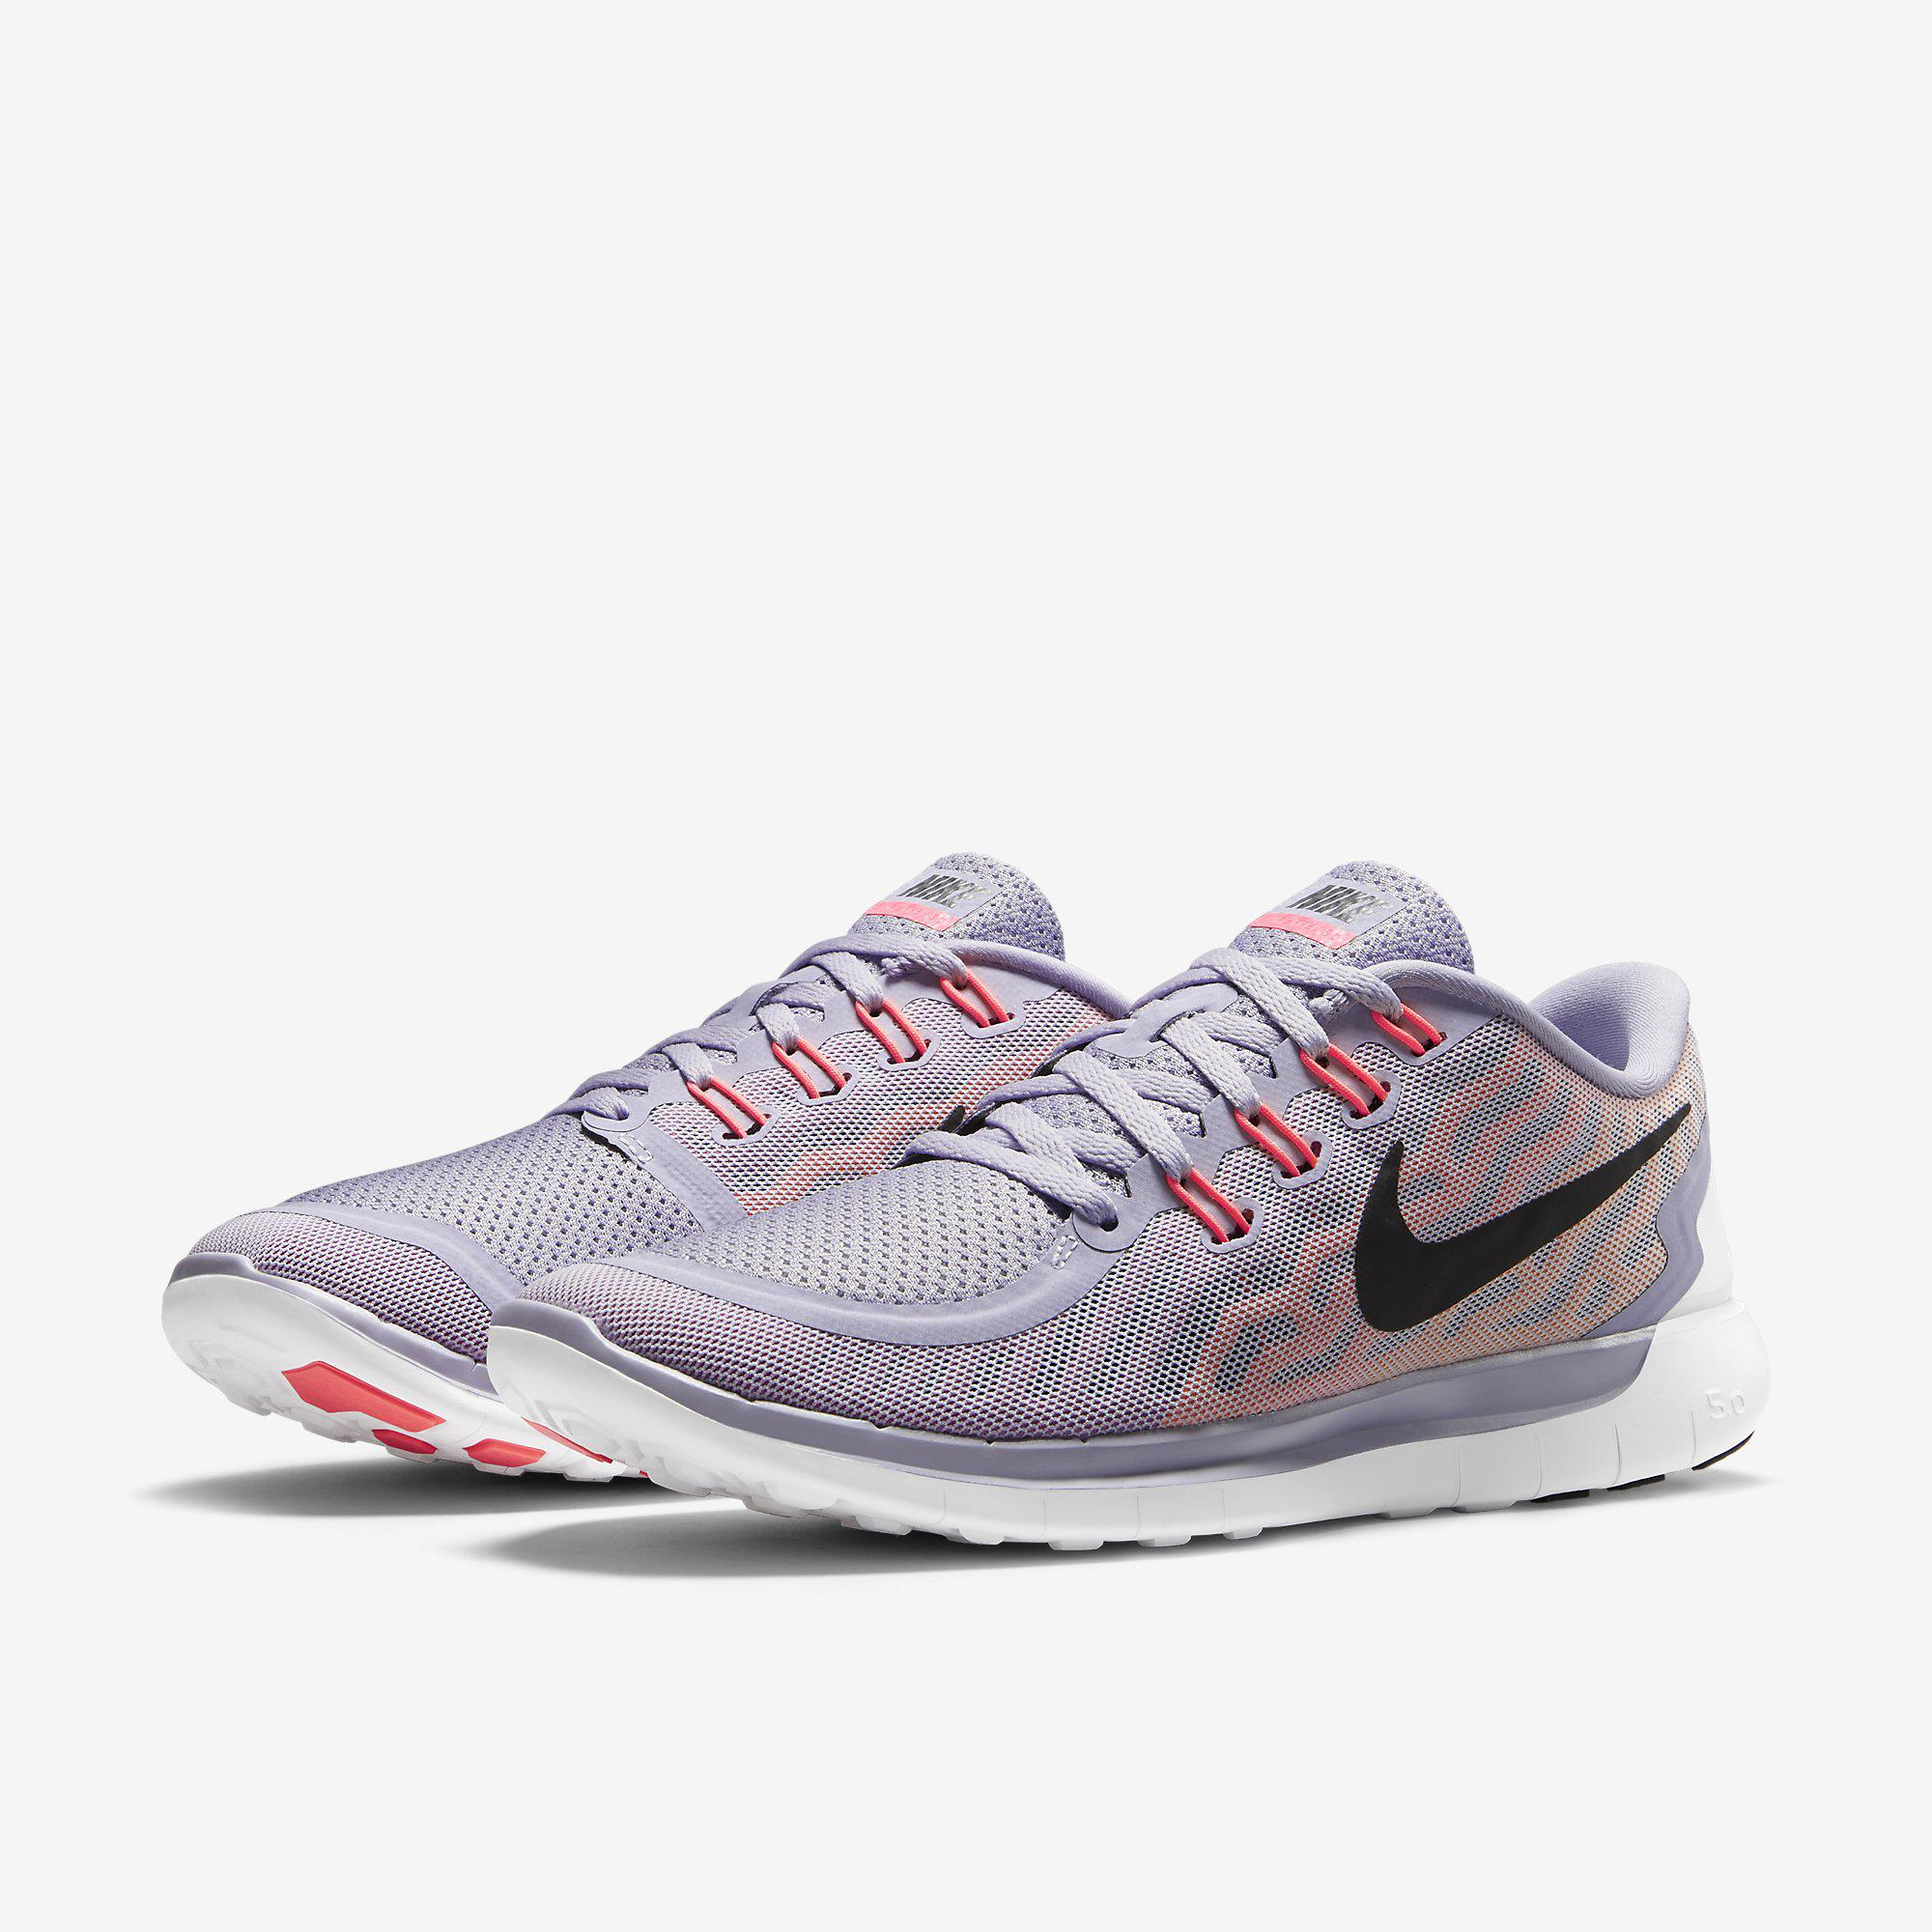 Nike Womens Free 5.0+ Running Shoes - Titanium/Fuchsia Flash